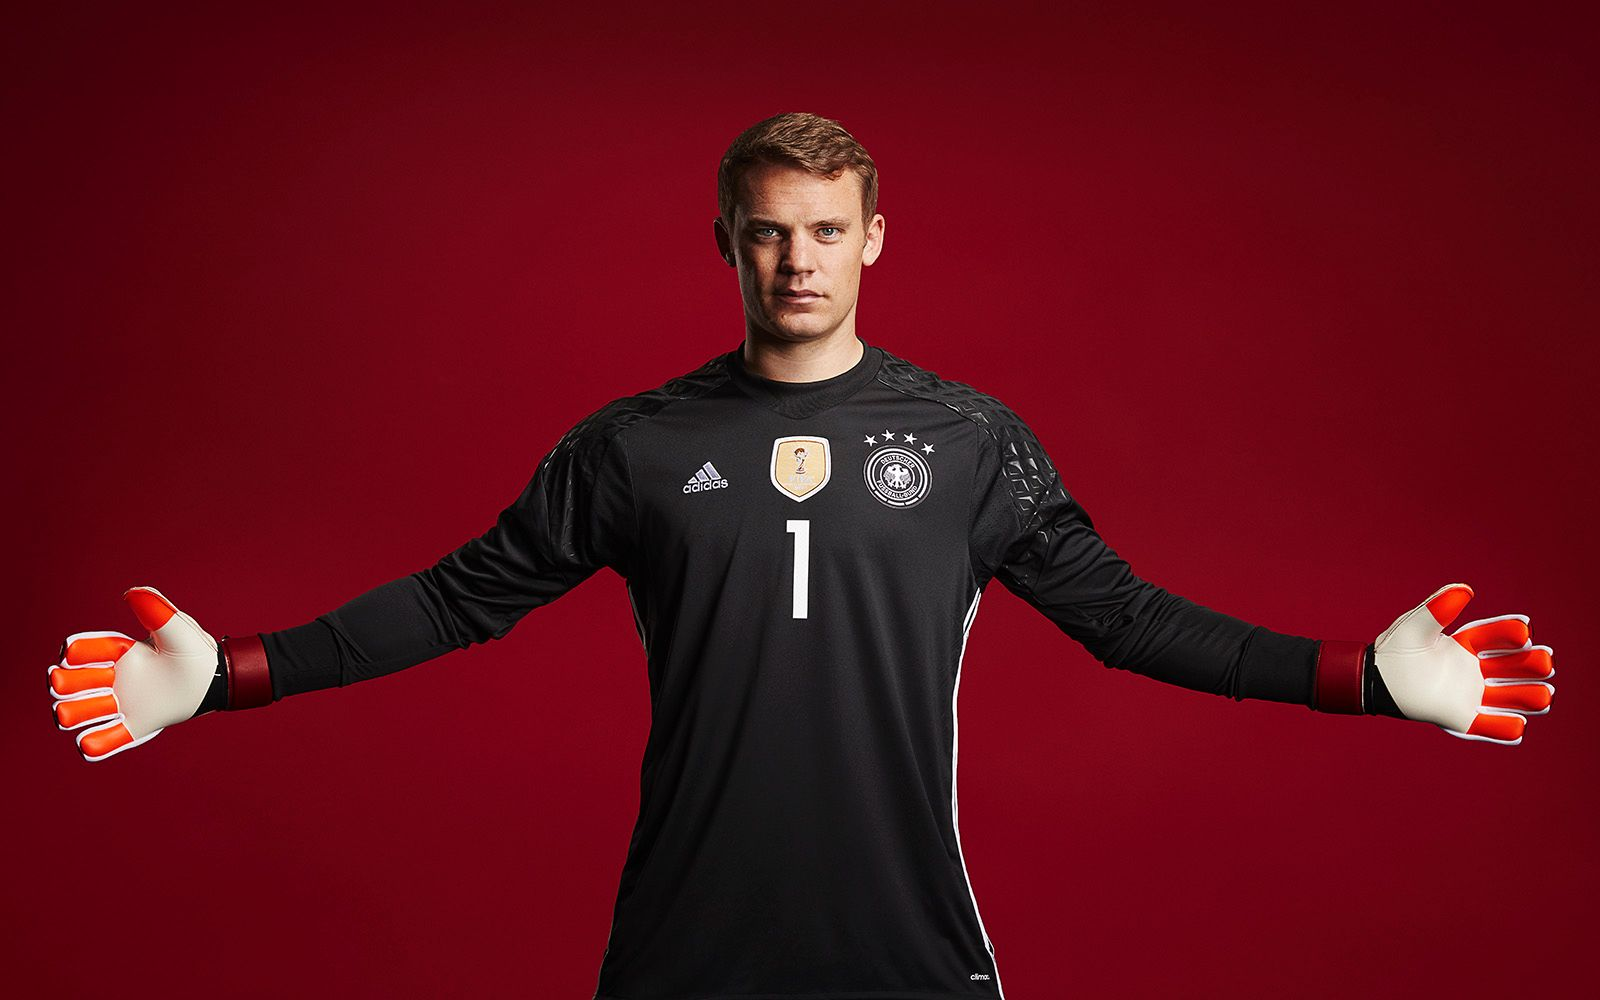 Bayern Munich s Manuel Neuer is changing what it means to be a goalie